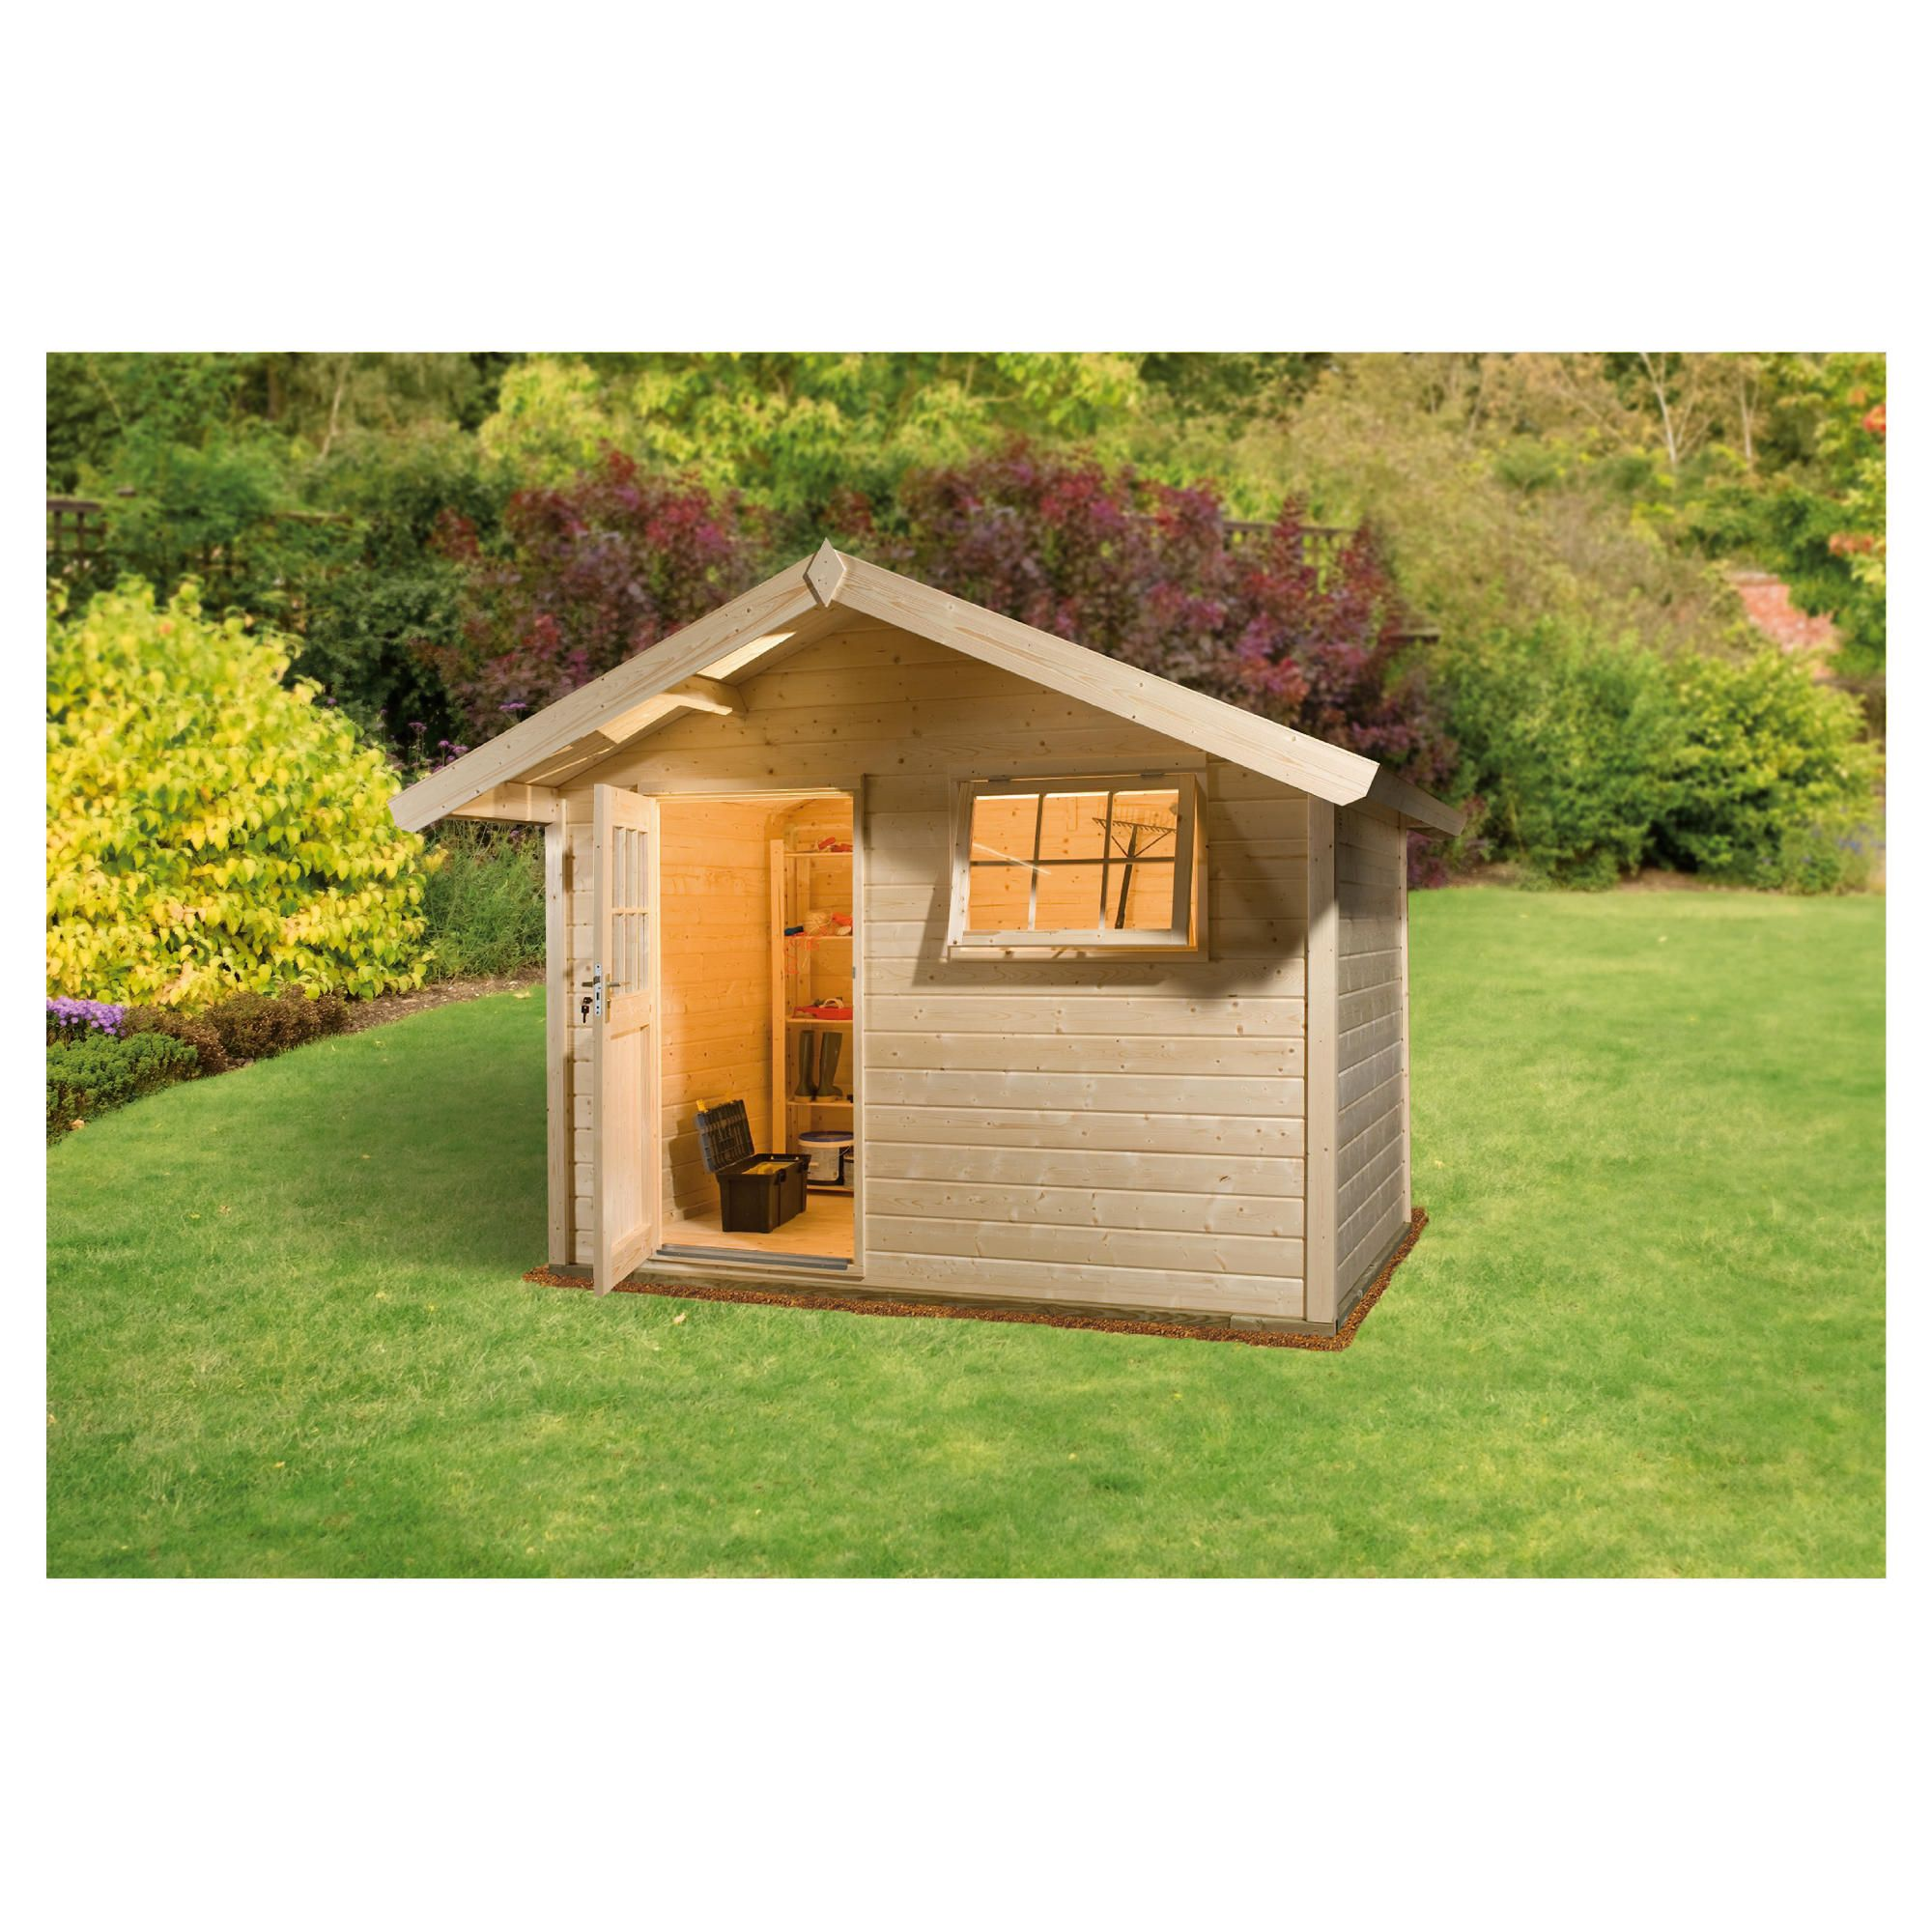 Finnlife SUVI 212 Log Cabin at Tesco Direct